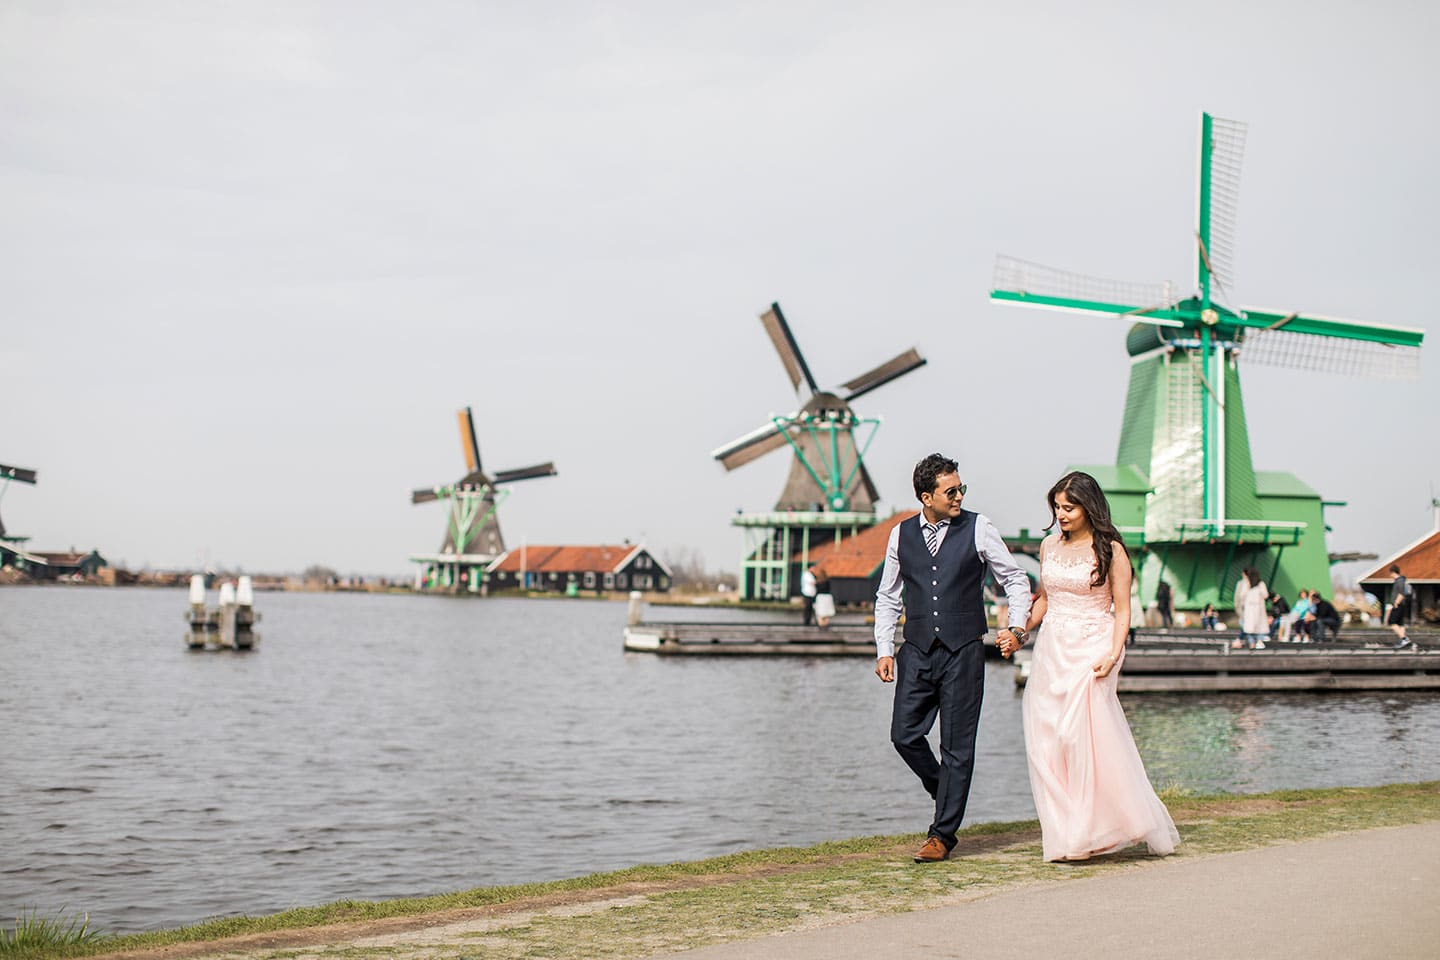 Prewedding photography Indian couple at Windmills of Zaanse Schans near Amsterdam, Holland